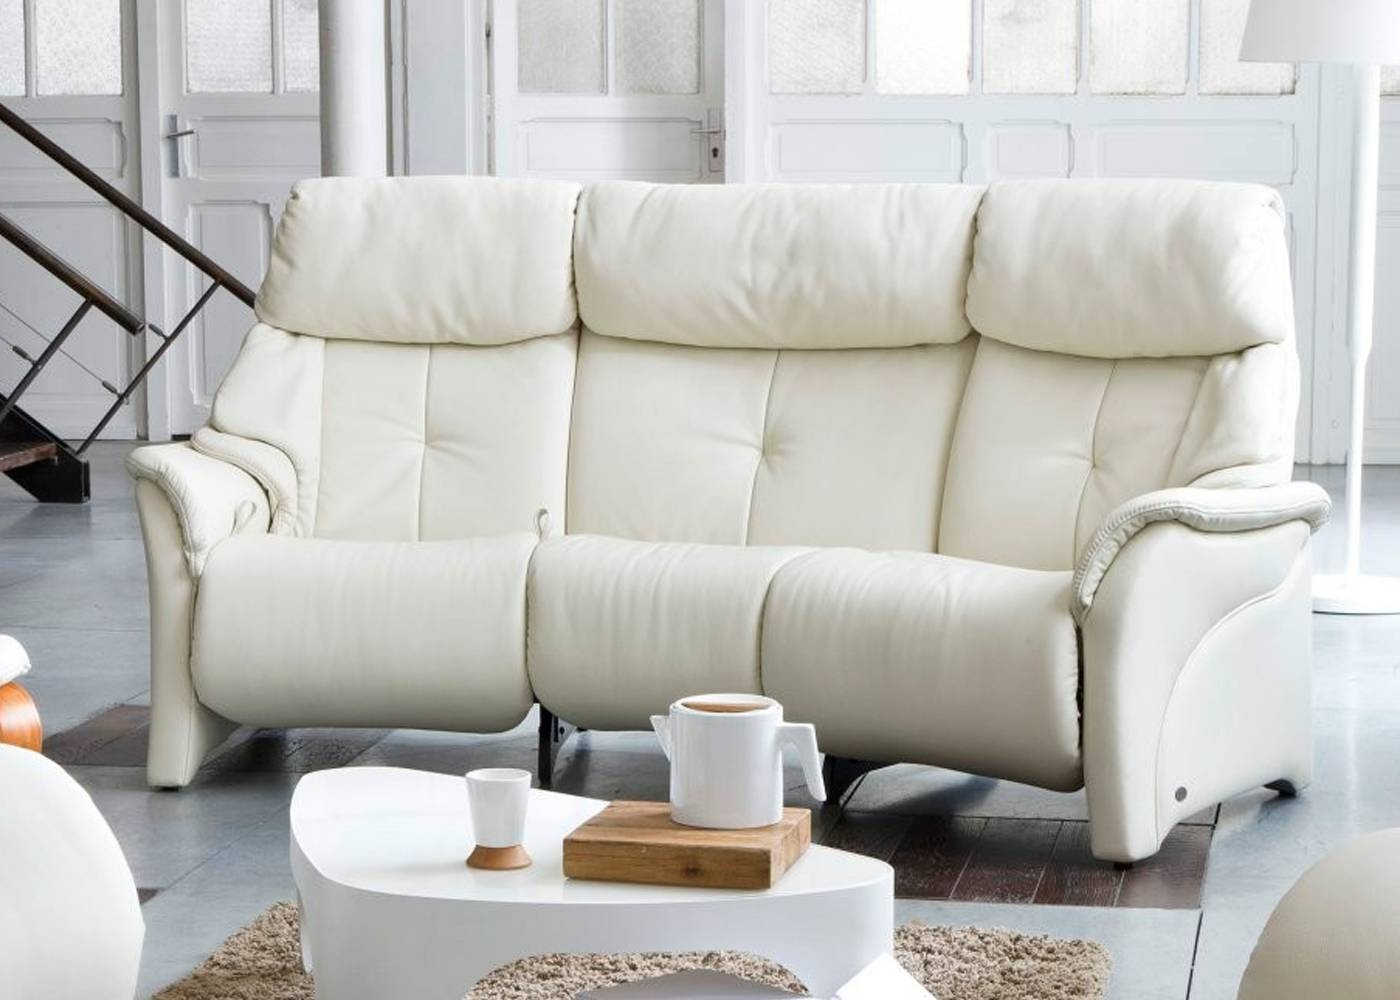 Sofas Center : 42 Fascinating Curved Reclining Sofa Photo Design pertaining to Curved Recliner Sofa (Image 22 of 30)